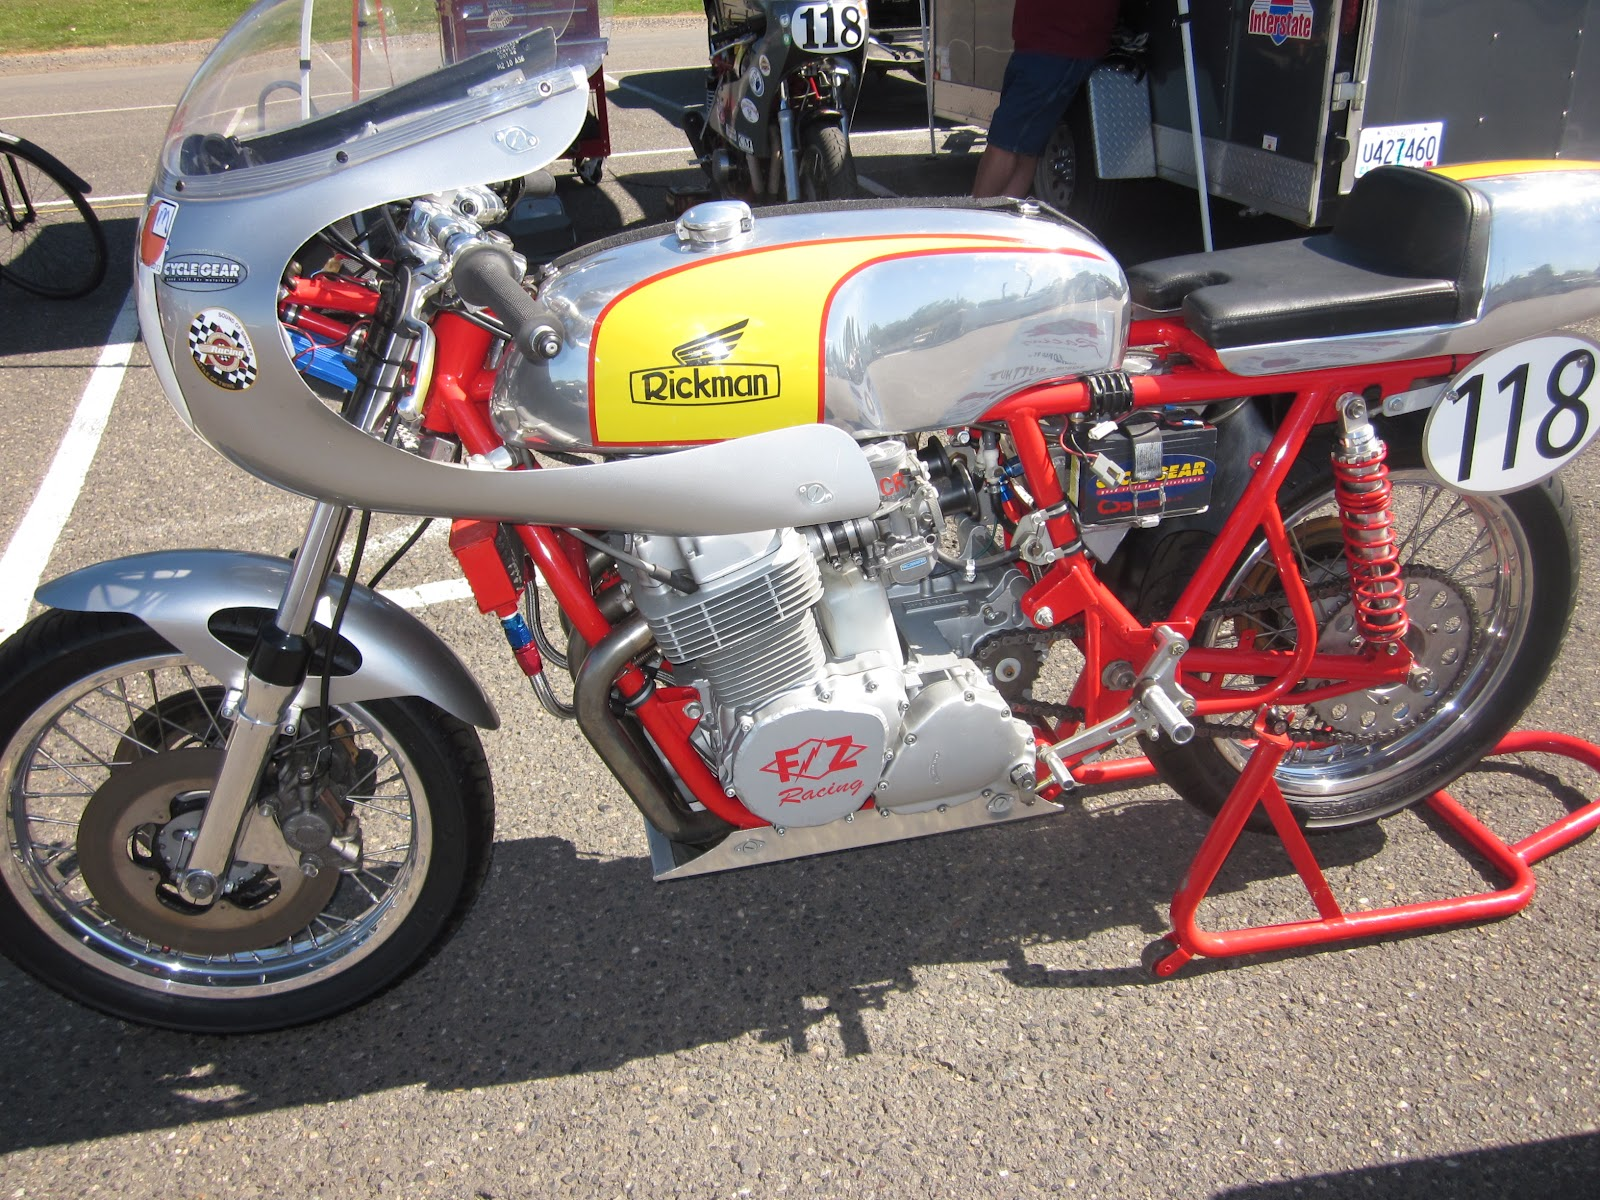 vintage honda road racing